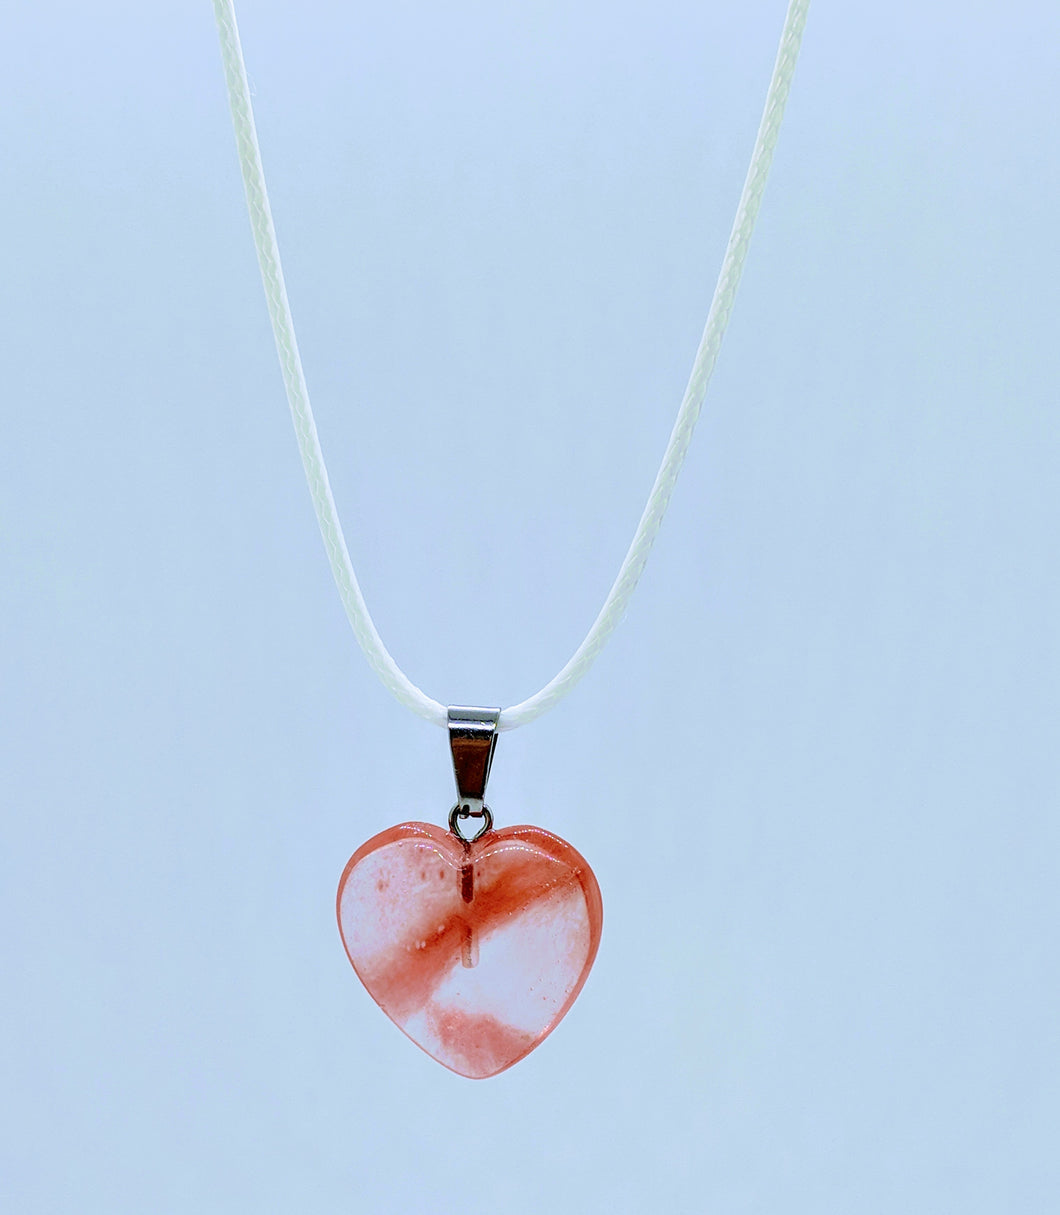 Heart Pendant Necklace ~ Innocence